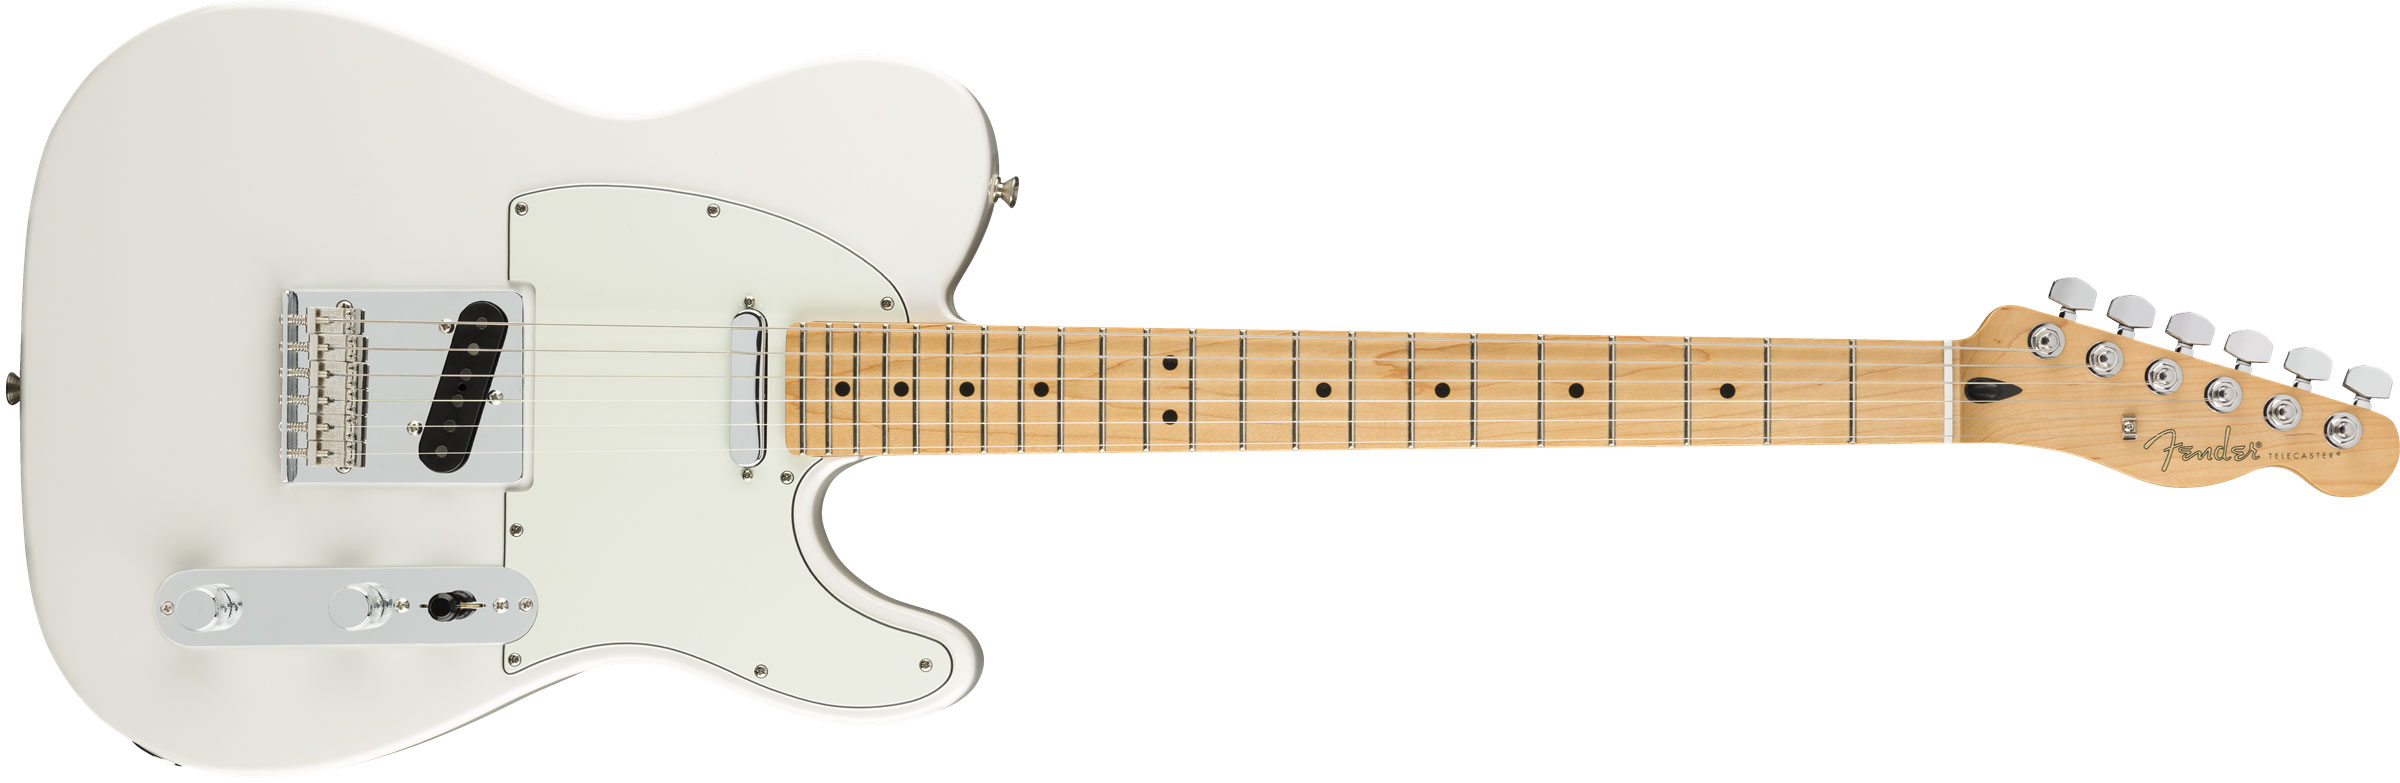 GUITARRA FENDER PLAYER TELECASTER MN 014-5212-515 POLAR WHITE